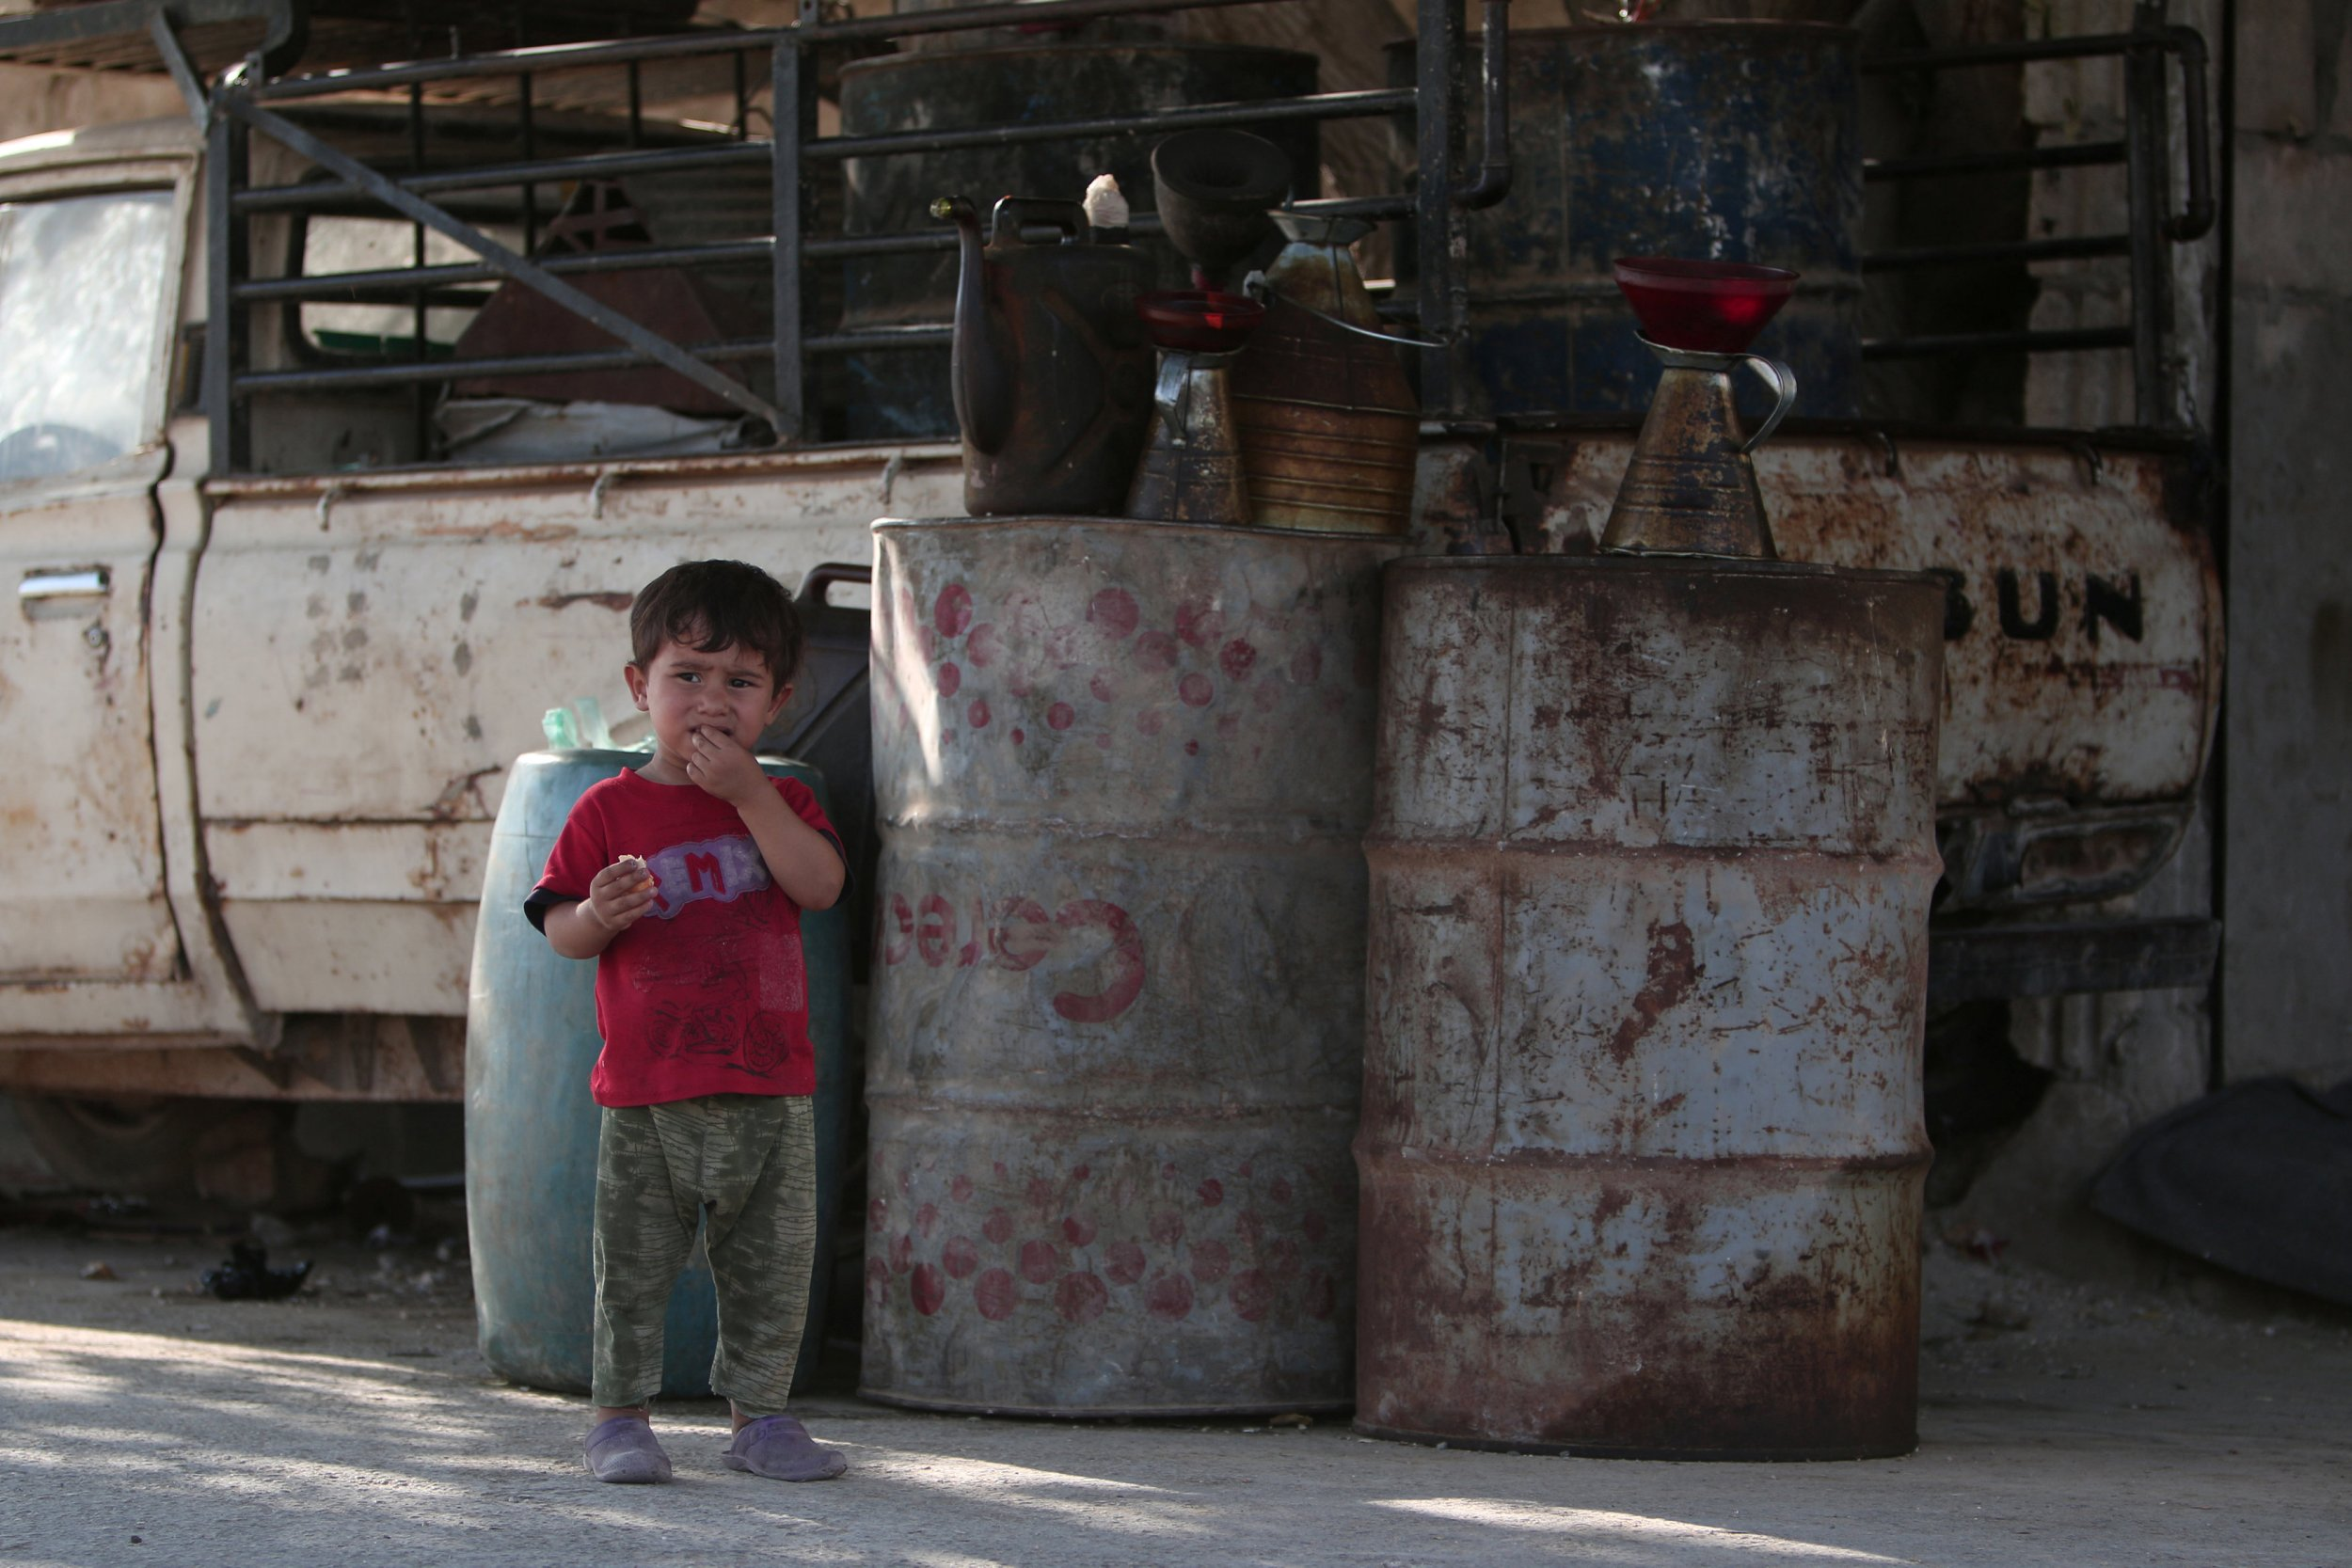 UN calls for ceasefire in Aleppo as 2million are left without water